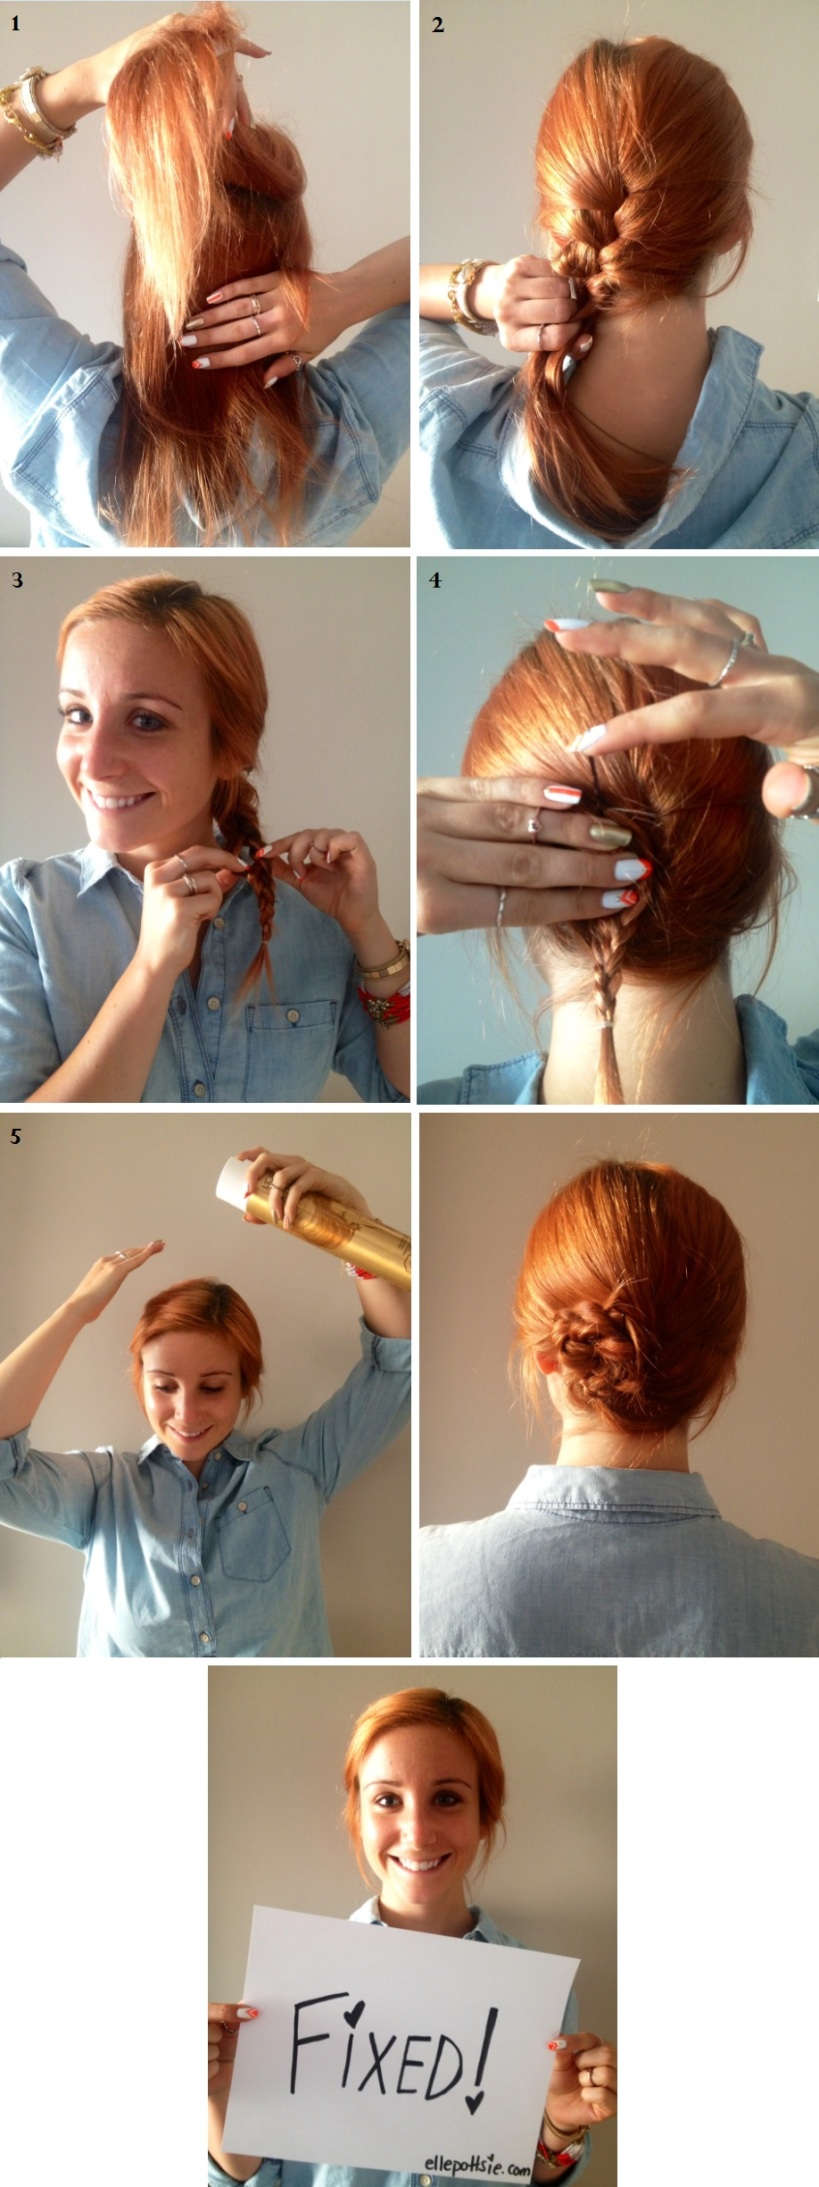 How To Fix Bad Hair